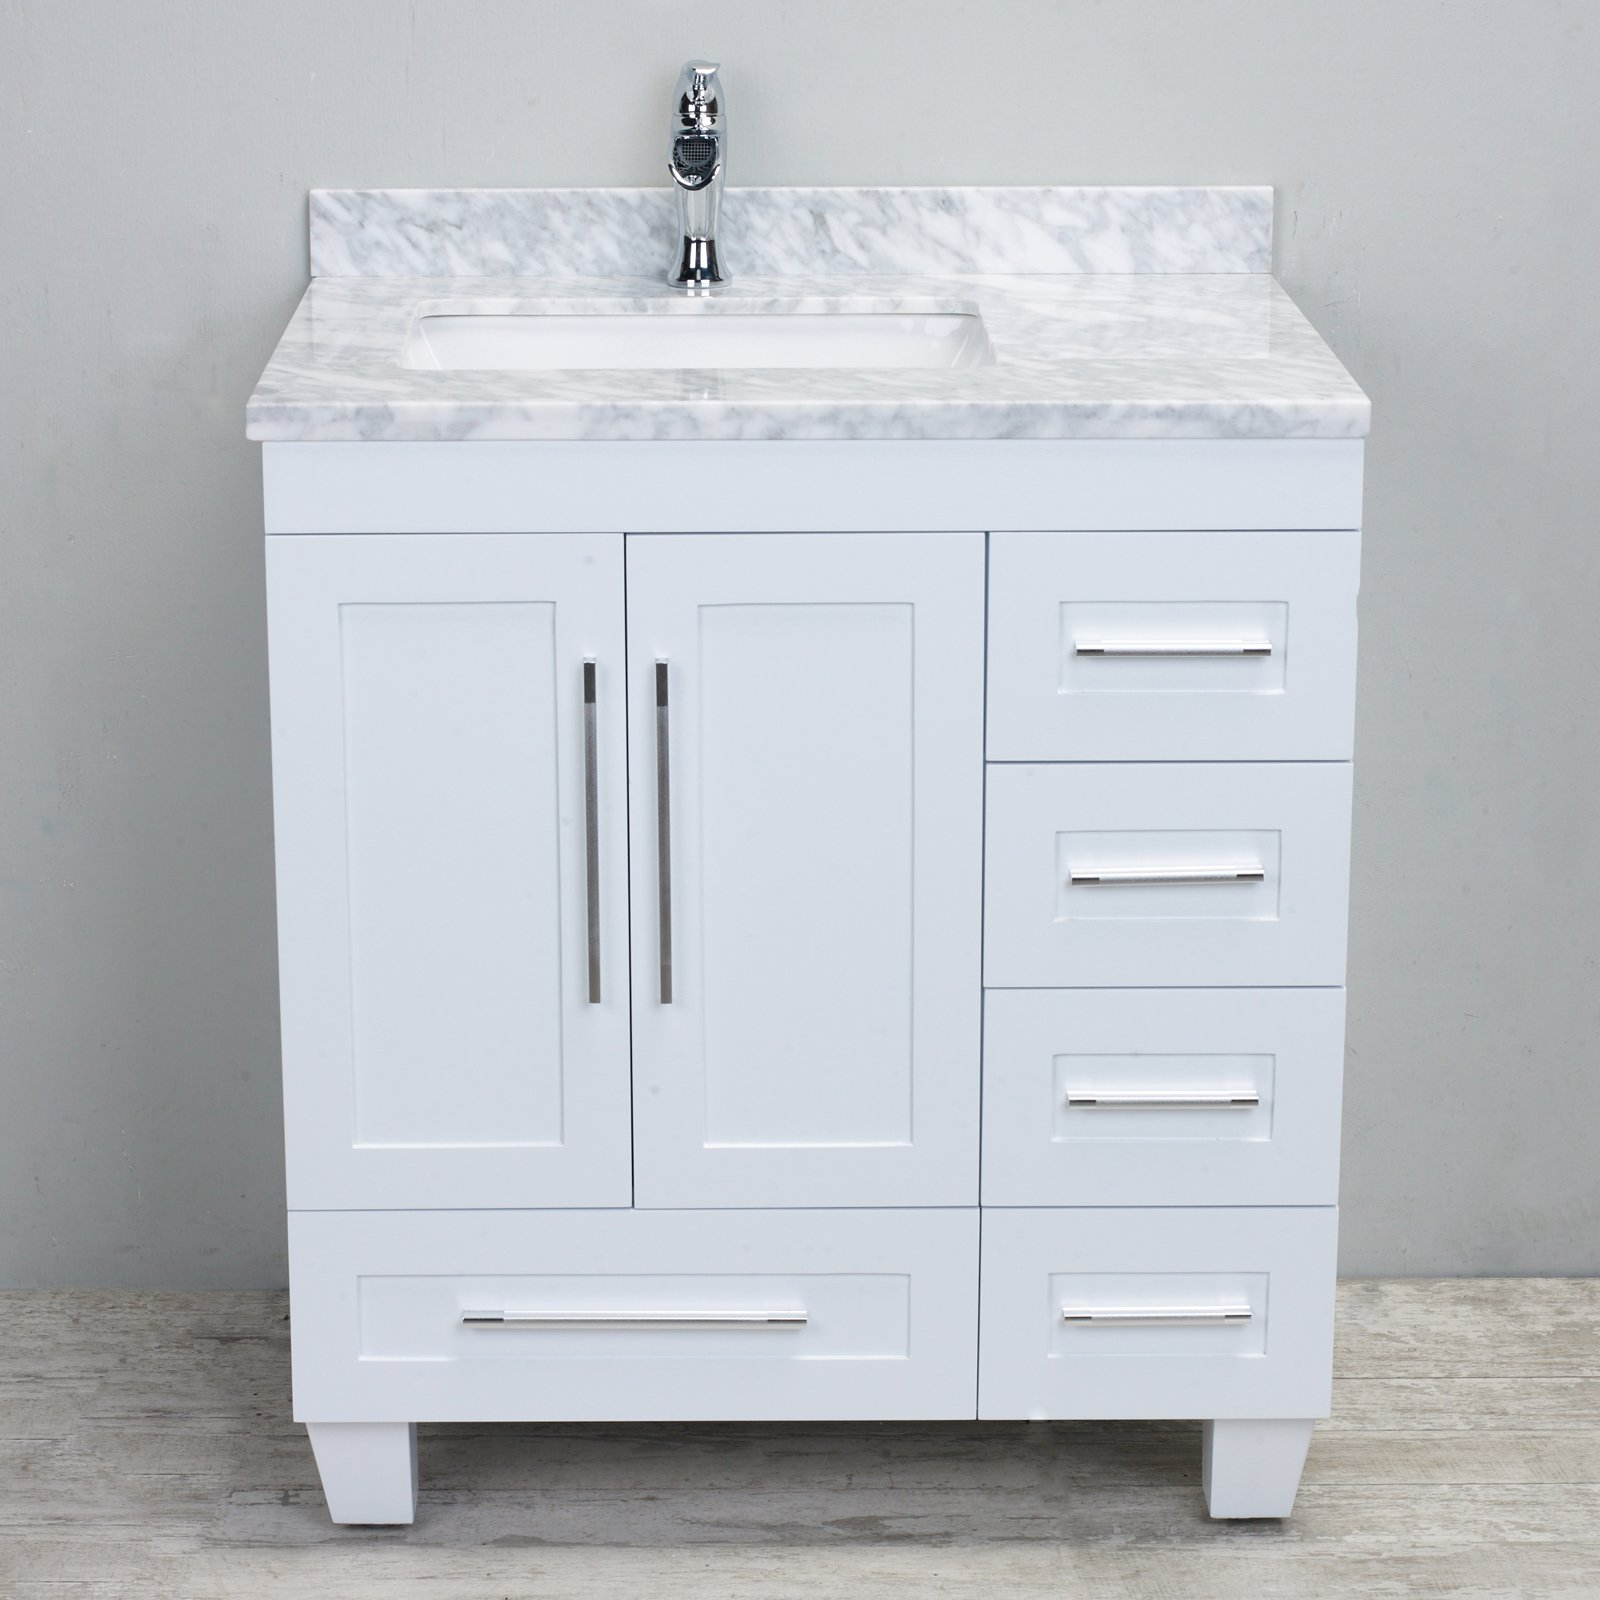 Merveilleux Eviva Loon 30 In. Single Sink Bathroom Vanity   White   Walmart.com